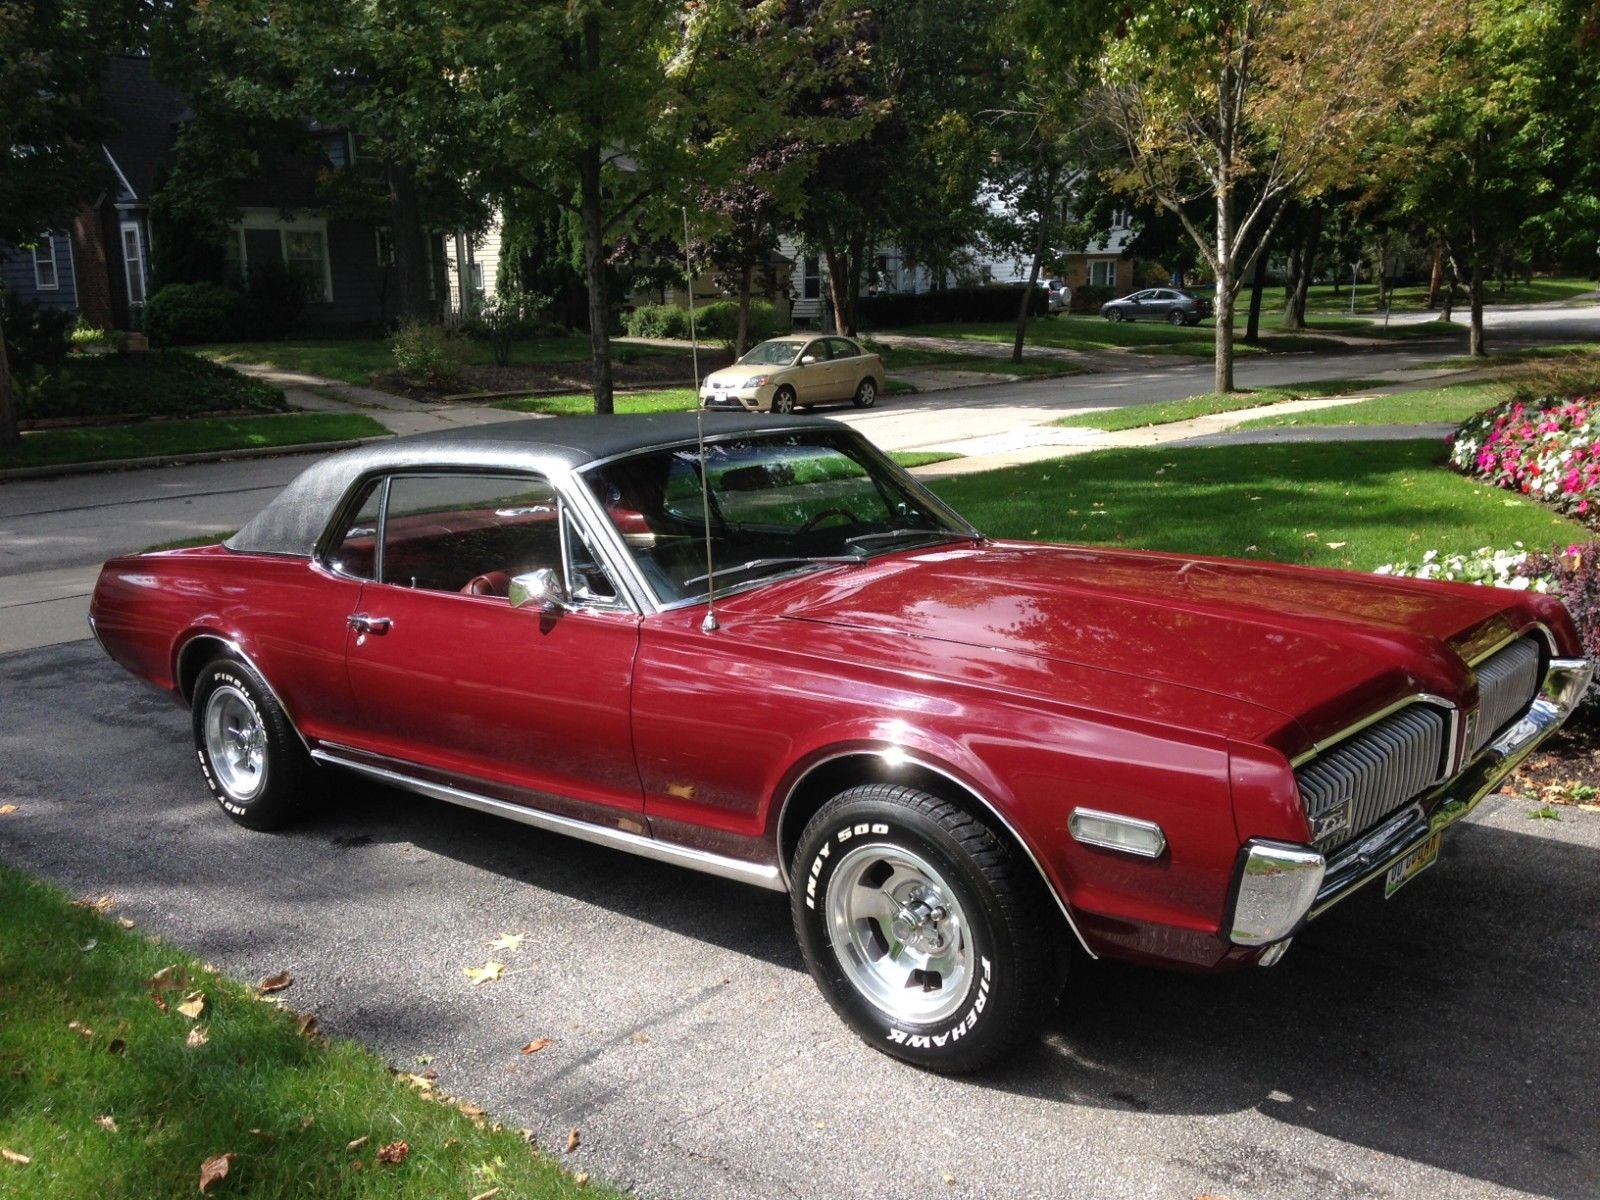 1968 mercury cougar 302 maroon automatic excellent condition show and go classic mercury. Black Bedroom Furniture Sets. Home Design Ideas